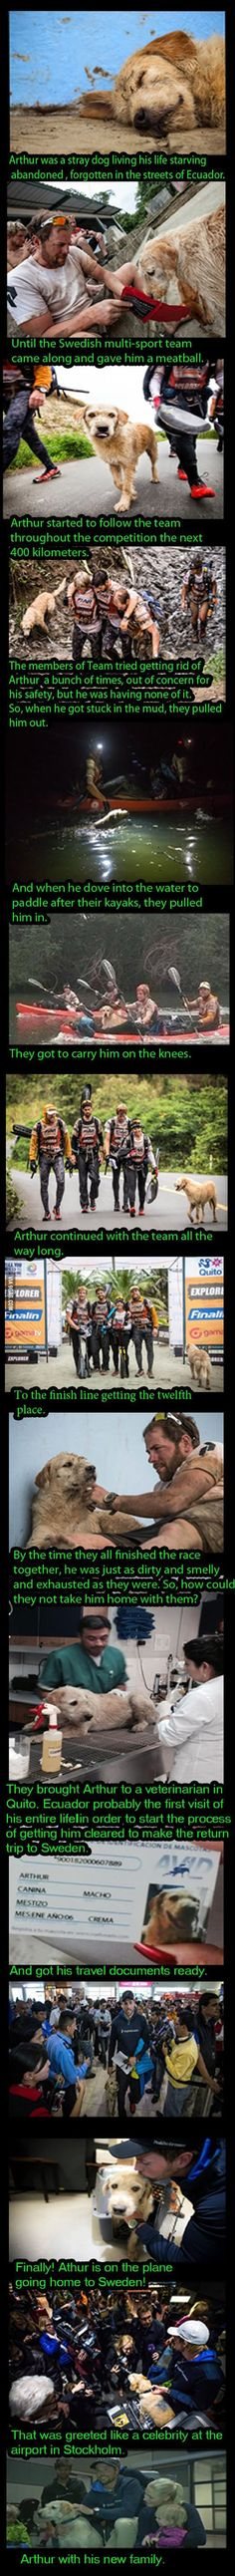 Meet Arthur, The Stray Dog That Became A Huge Celebrity. . . #heroes . . #compassion . . #rescue